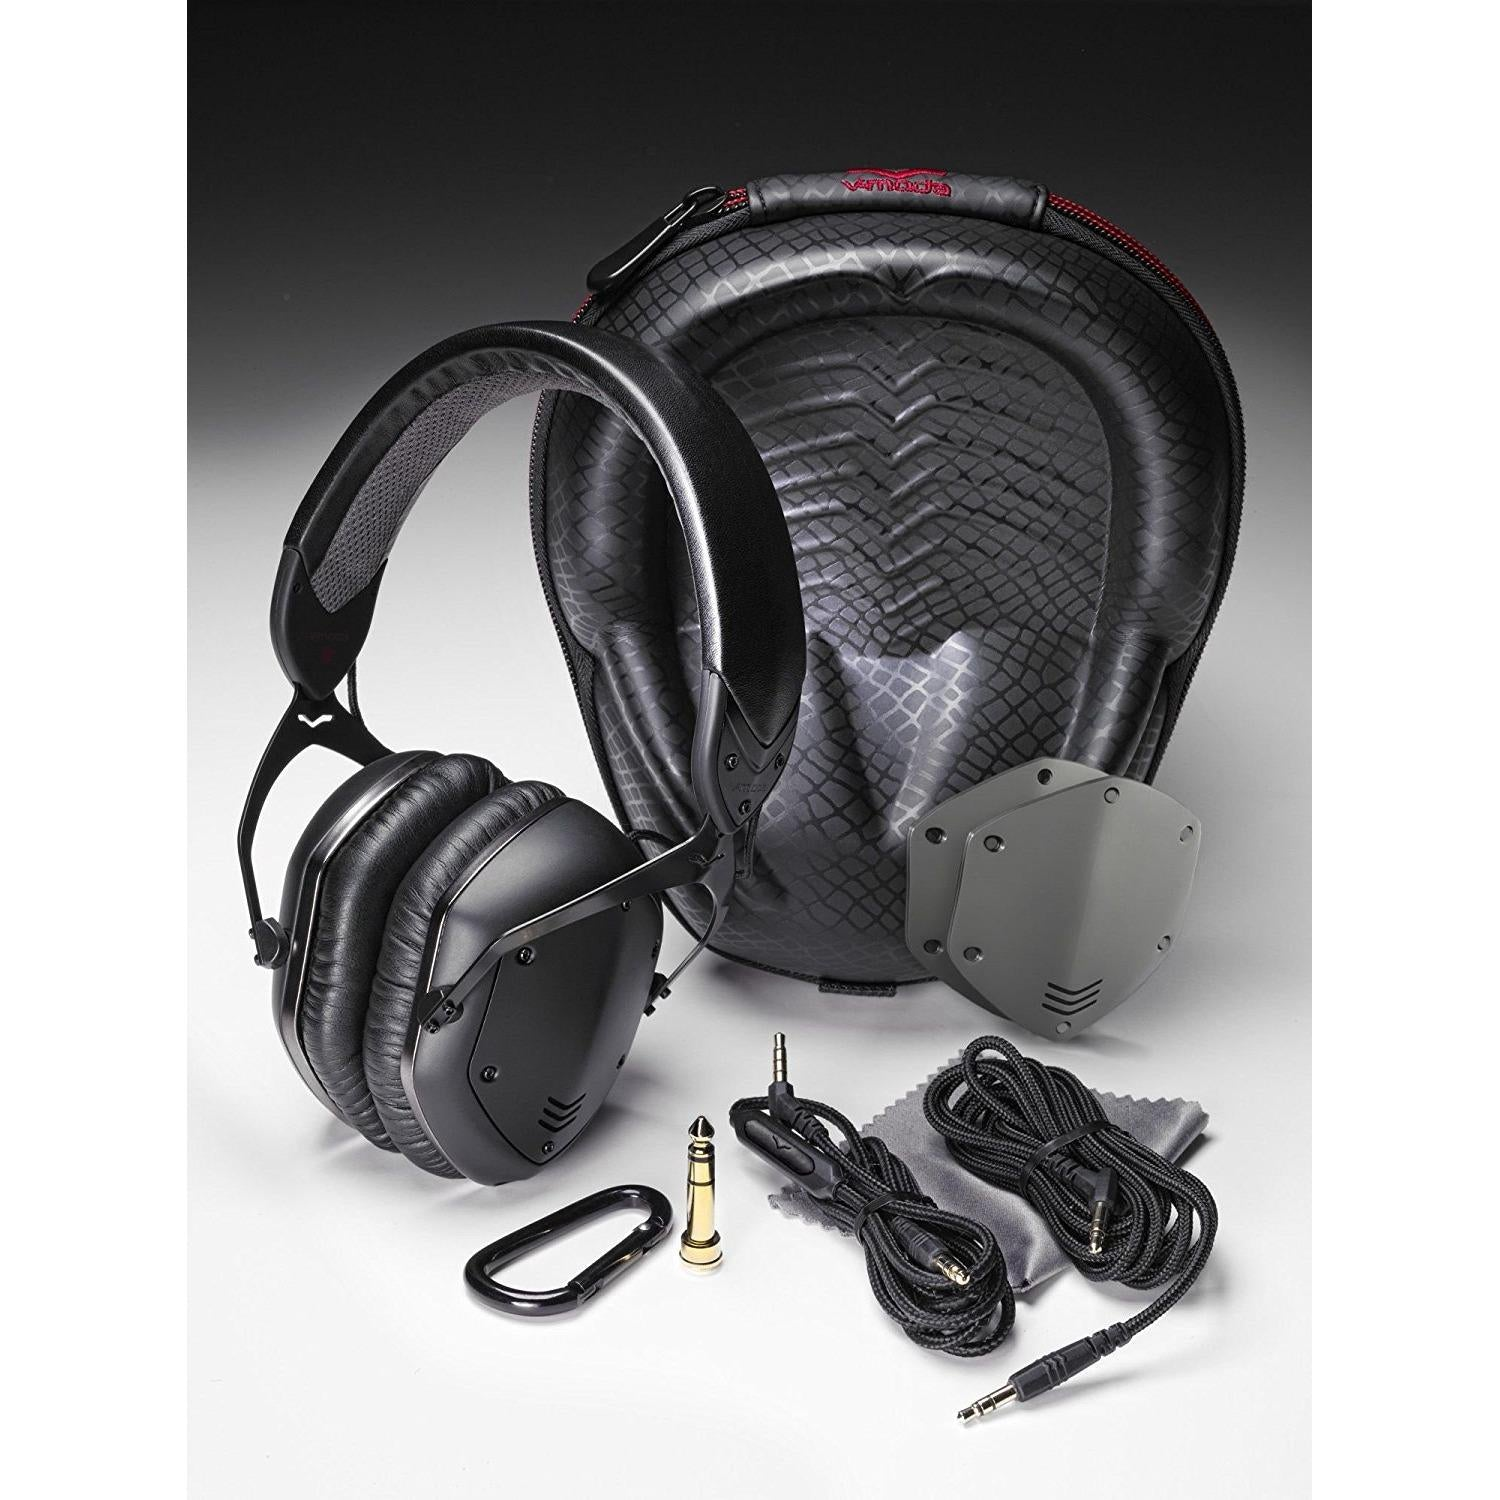 V-MODA Crossfade LP2 Vocal Limited Edition Over-Ear Noise-Isolating Metal Headphone (Matte Black)